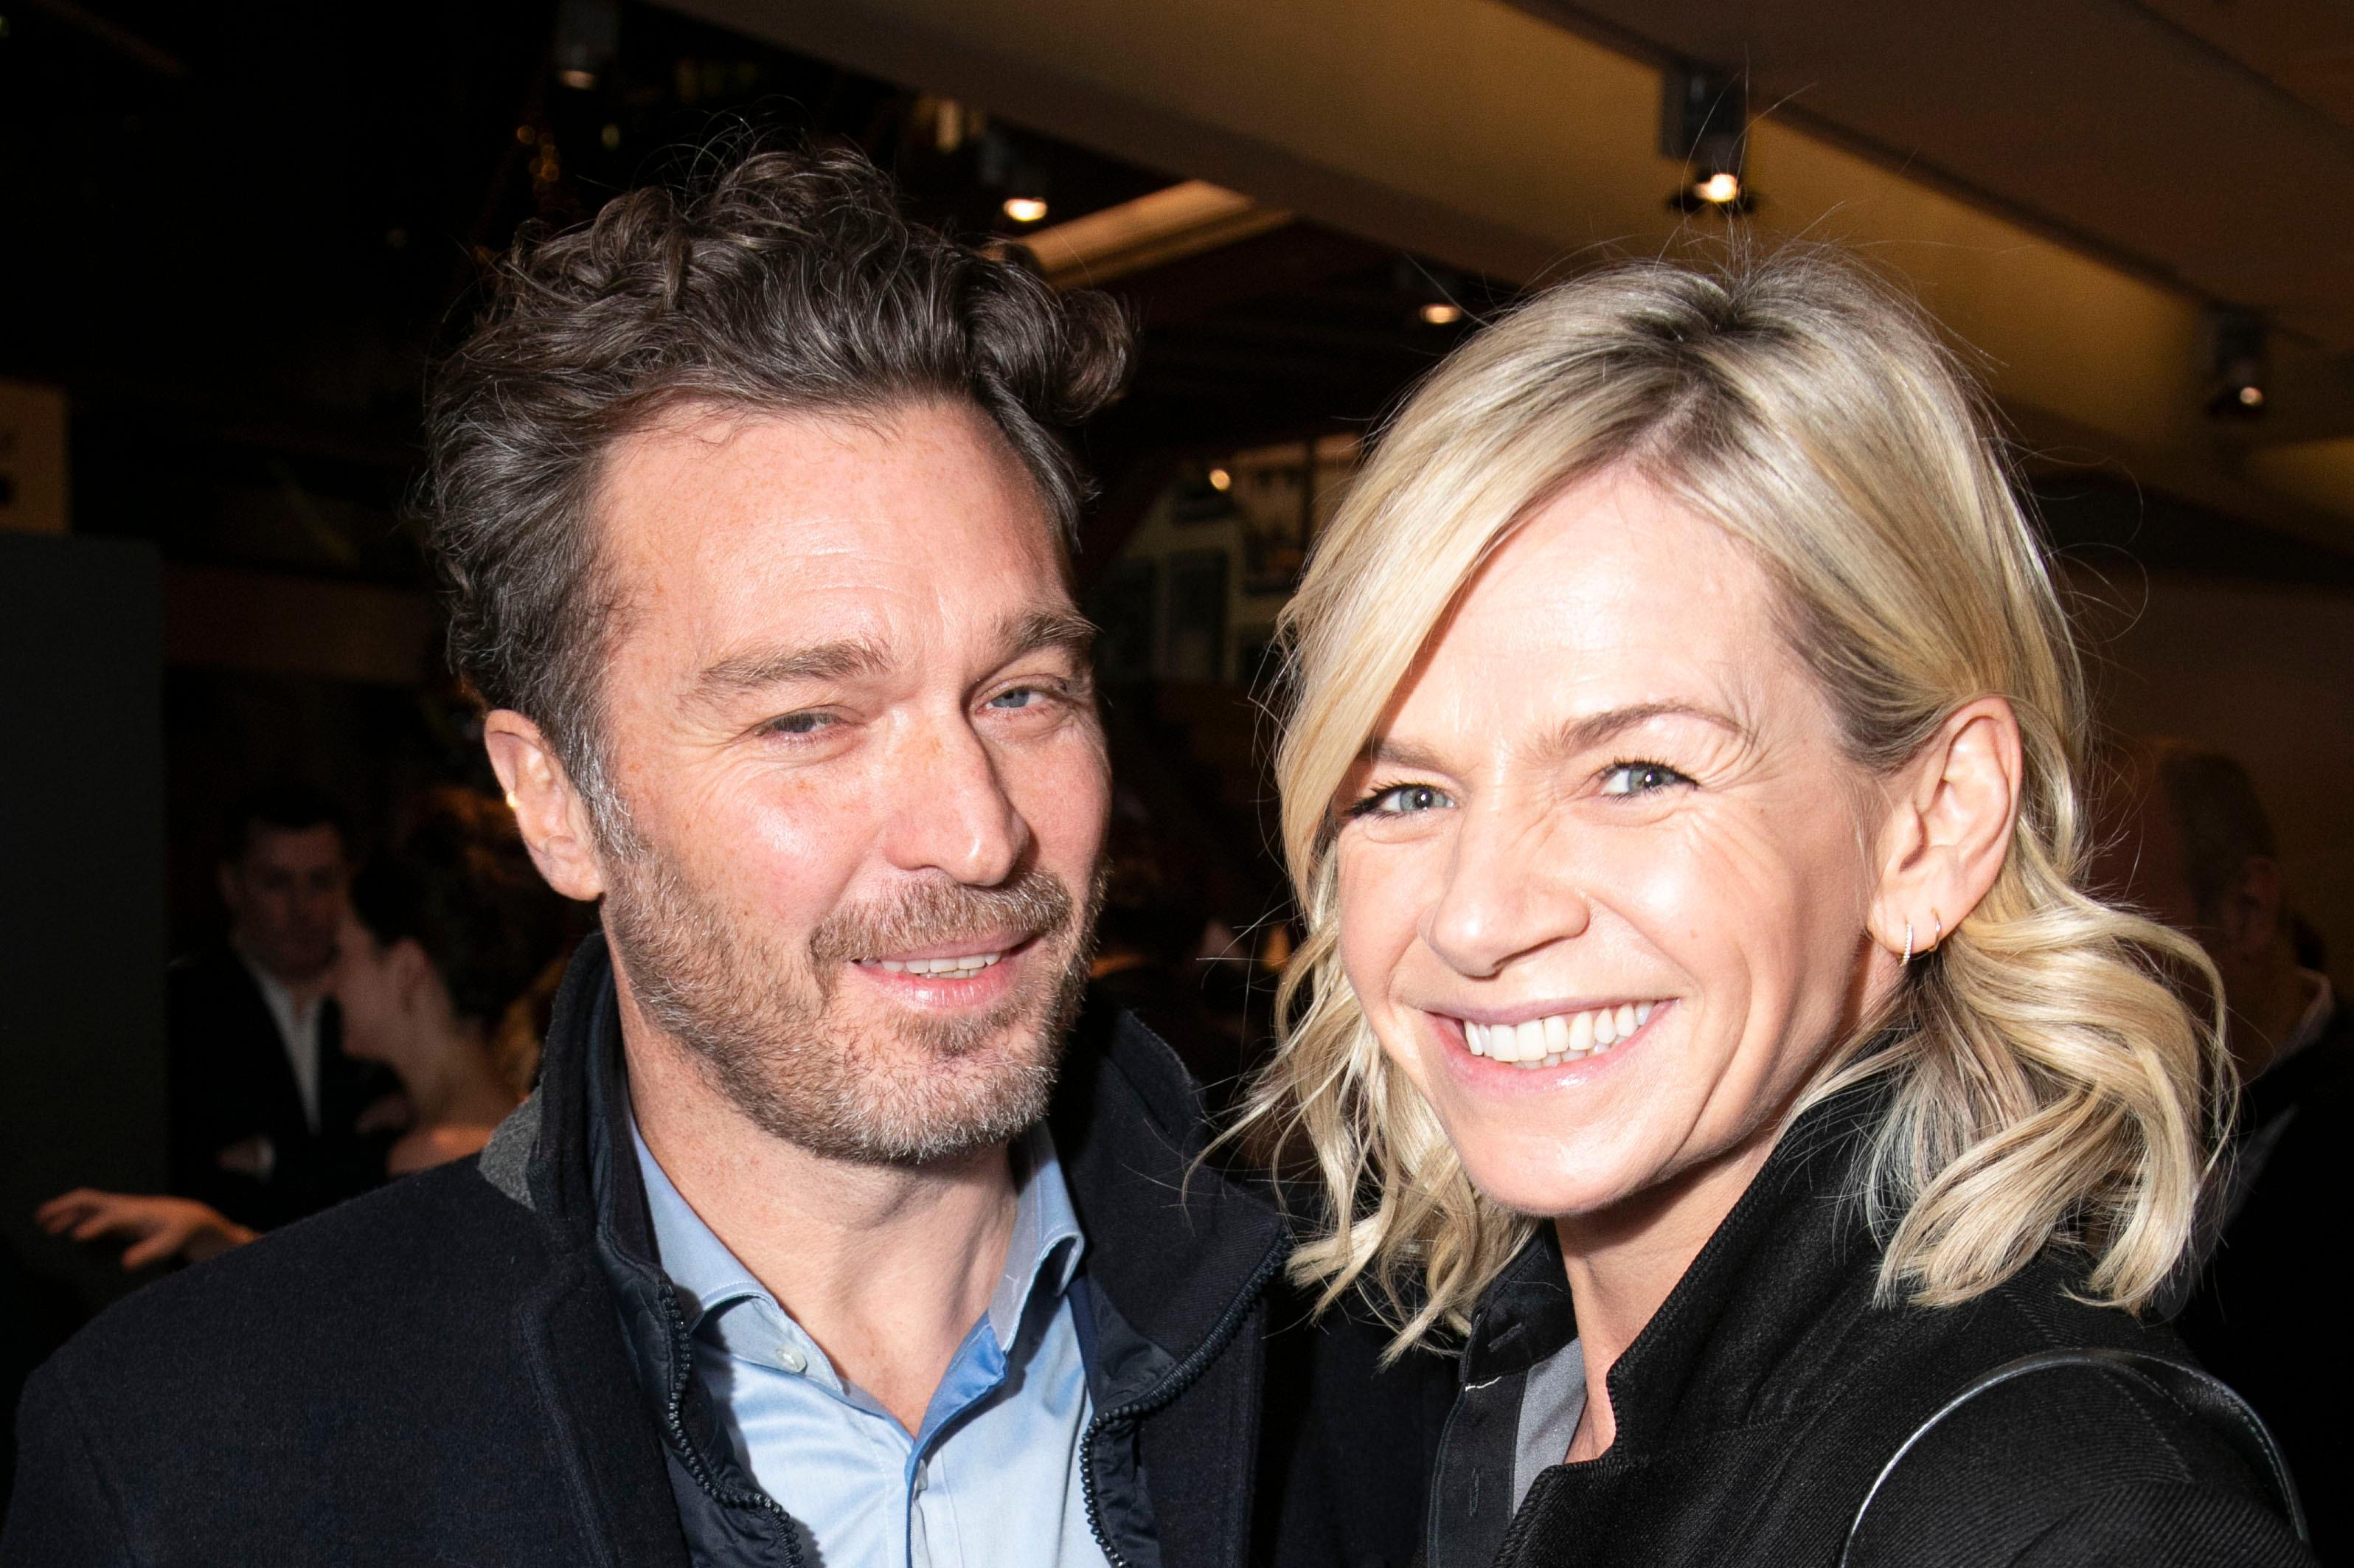 Zoe Ball beams as she makes first red carpet appearance with boyfriend Michael Reed